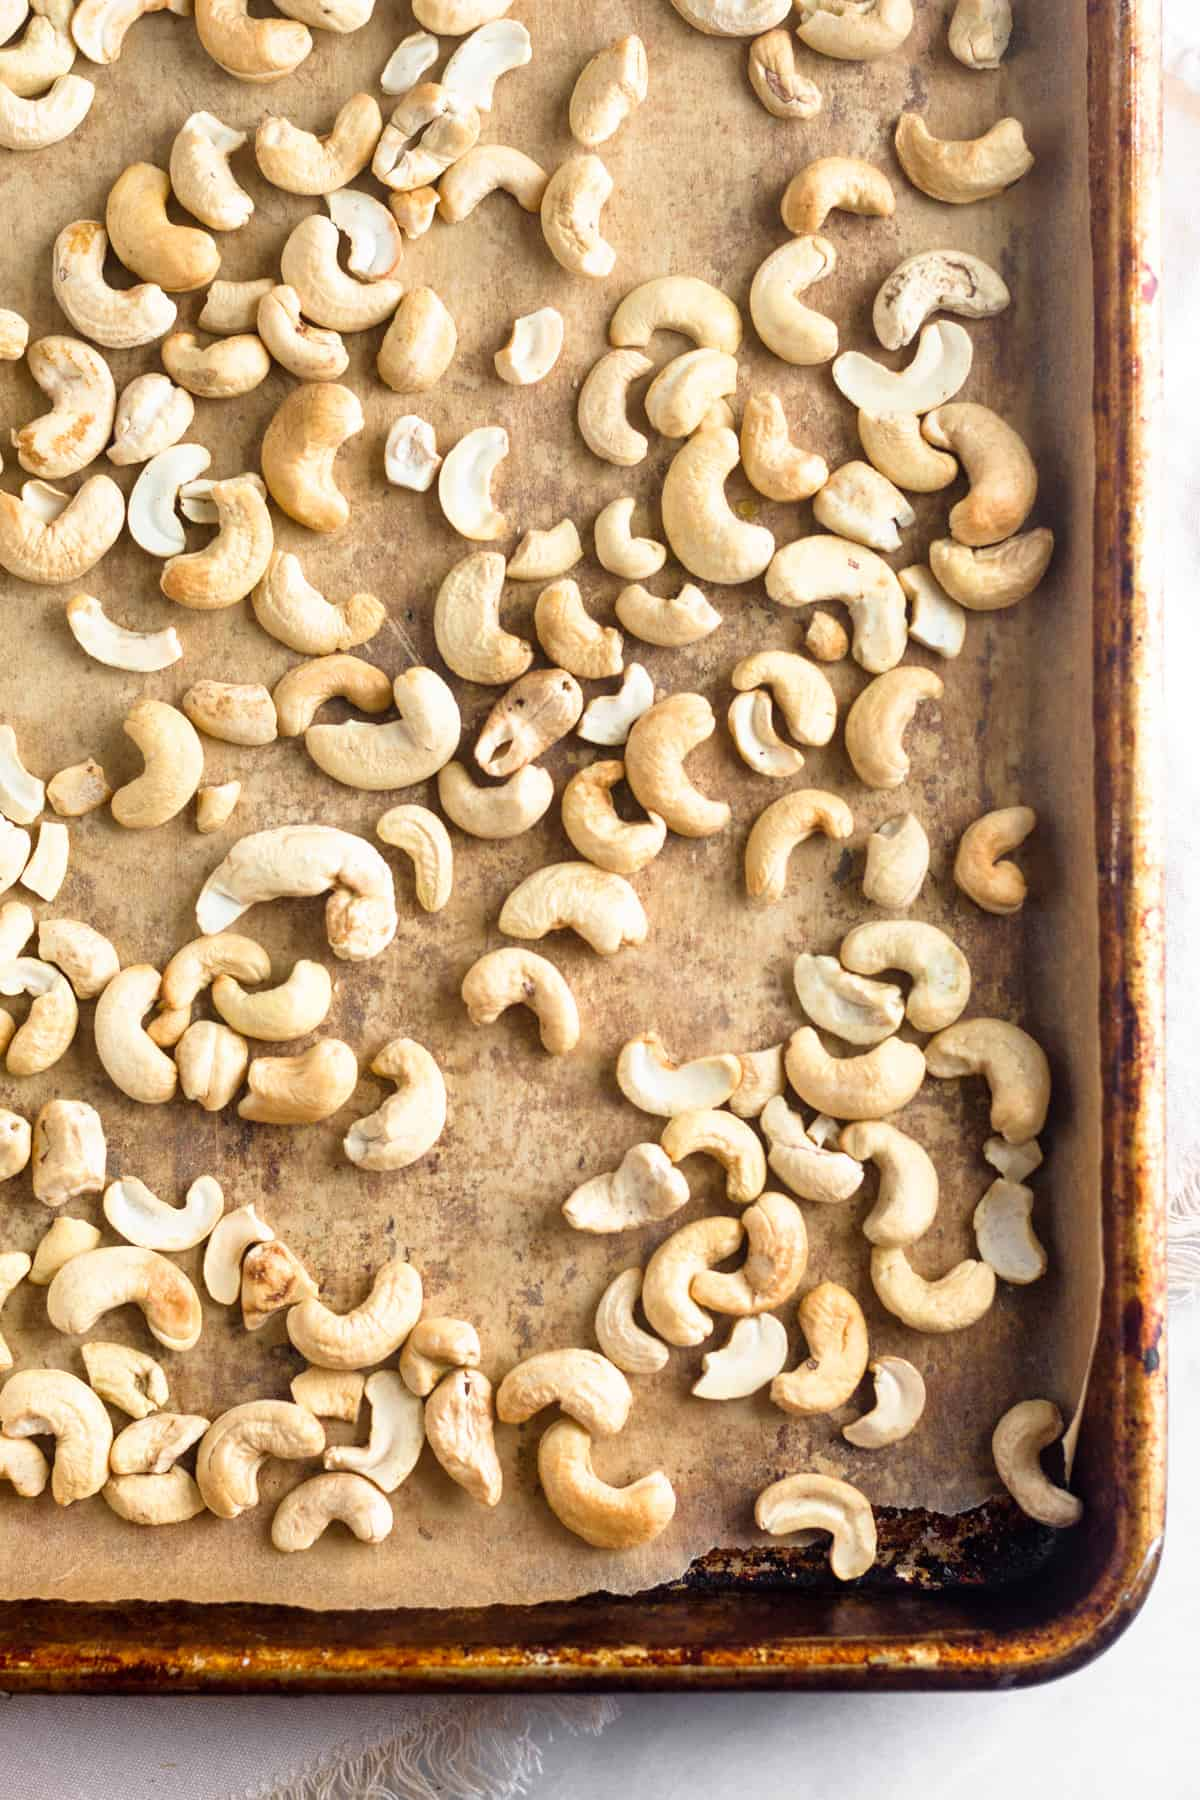 Baking sheet lined with parchment paper and full of roasted cashews